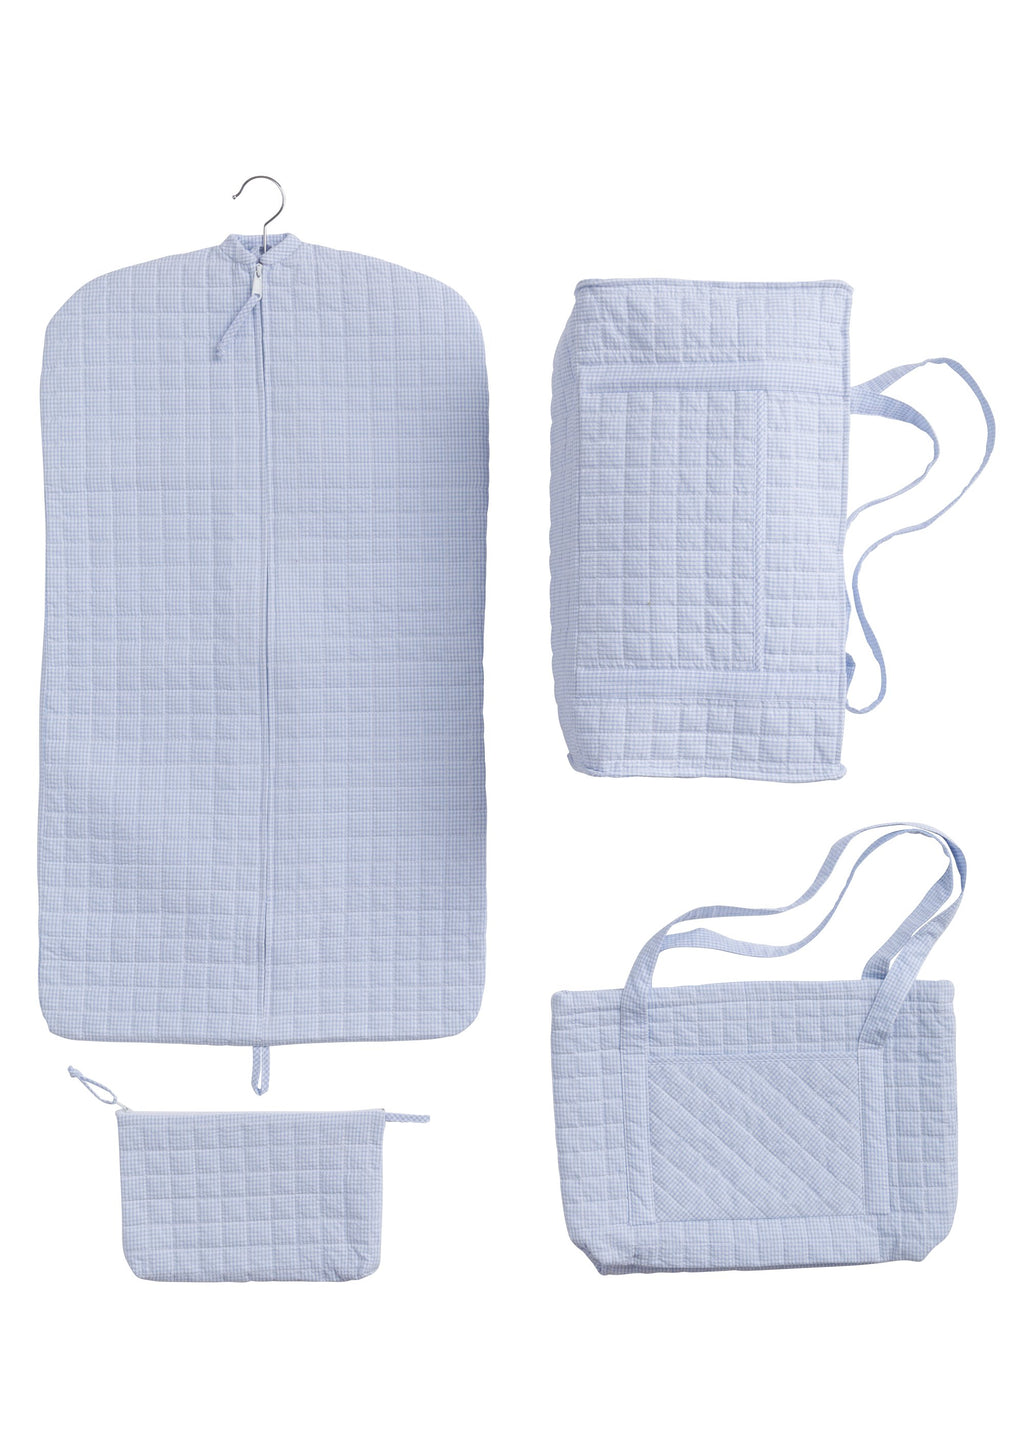 Quilted Blue Garment Bag - Born Childrens Boutique